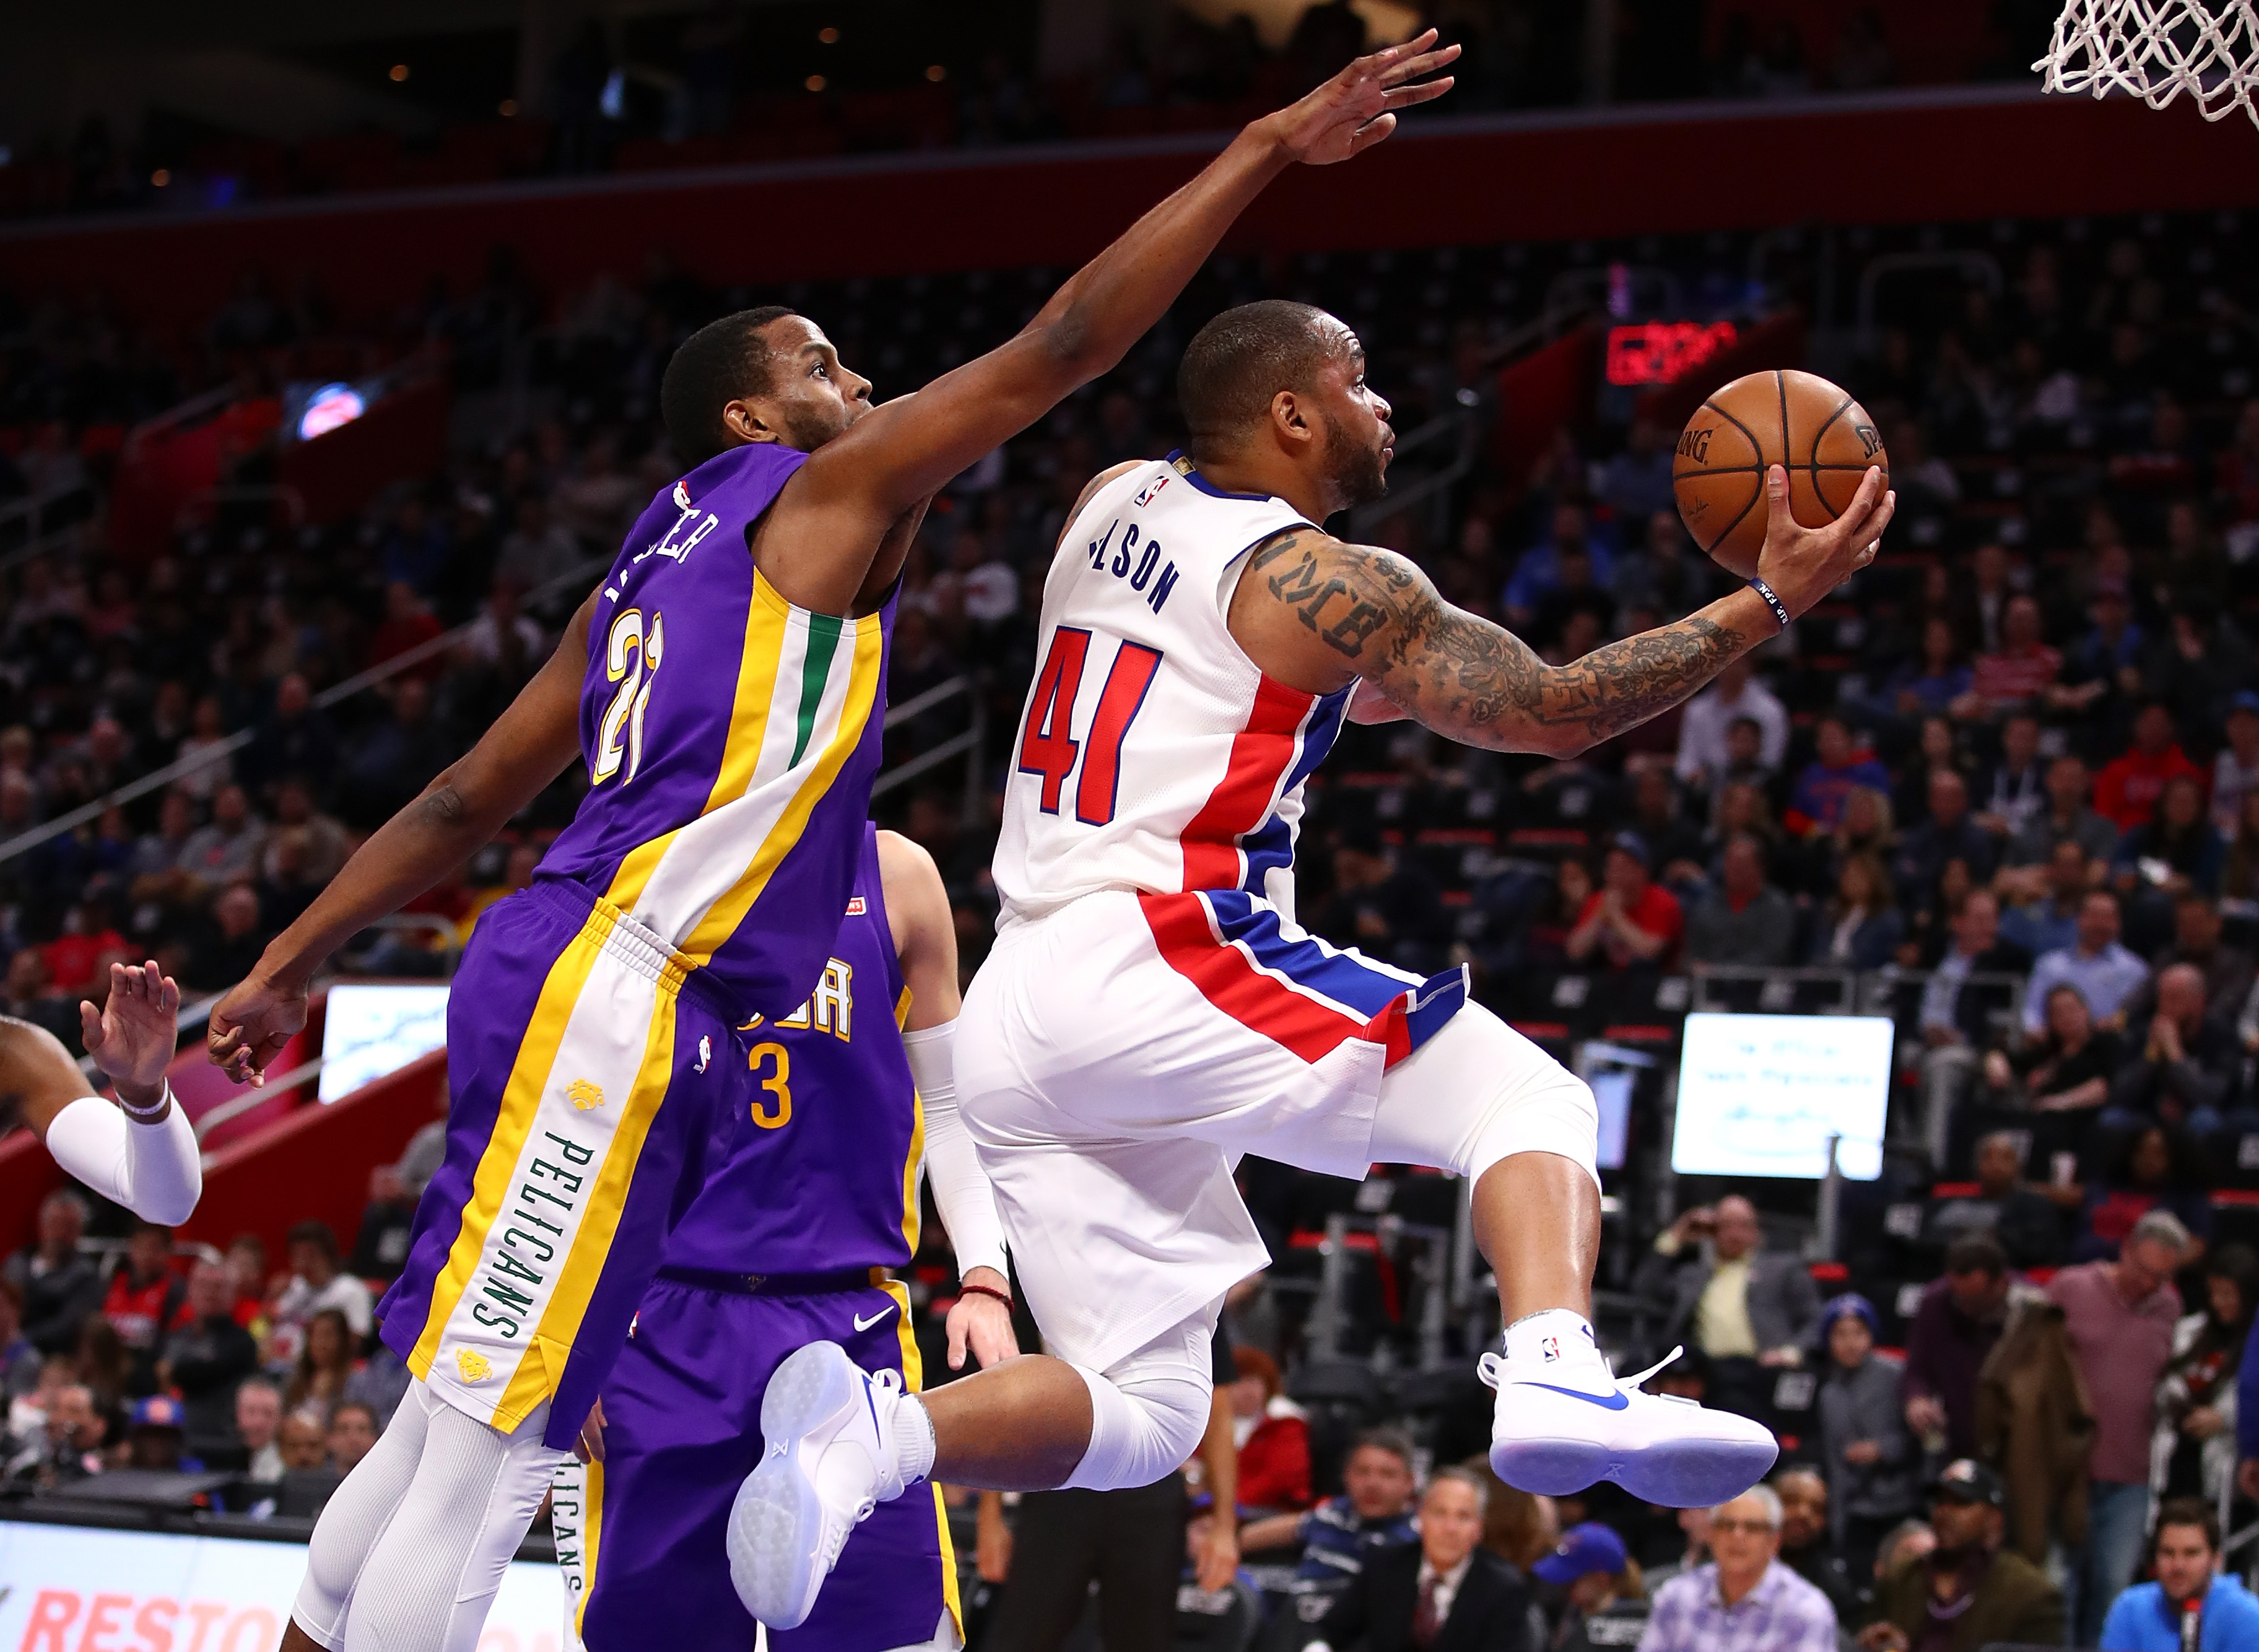 A Detroit Pistons basketball player goes up for a basket while a New Orleans player jumps behind him